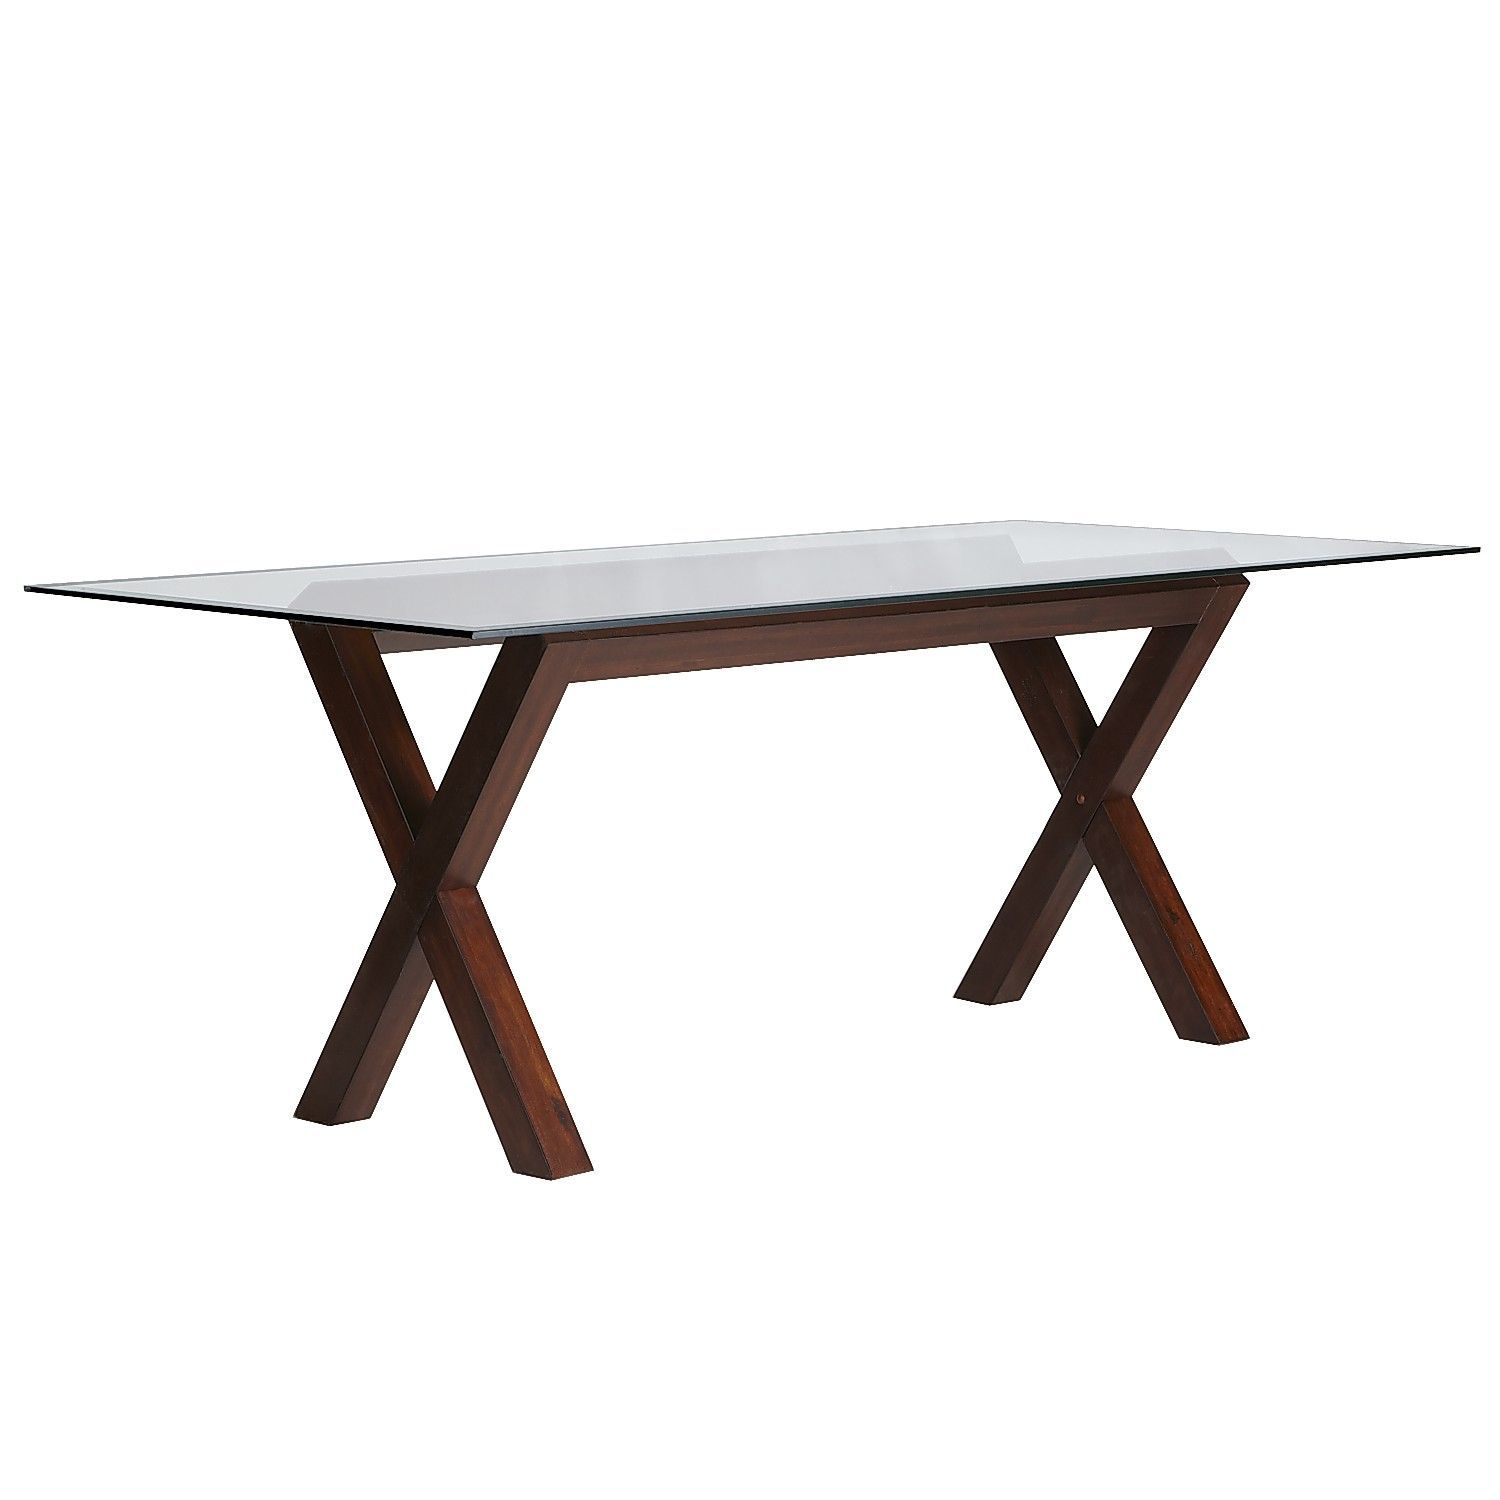 Dining Room Table Bases Wood: Mahogany Brown Pier 1 $199.99